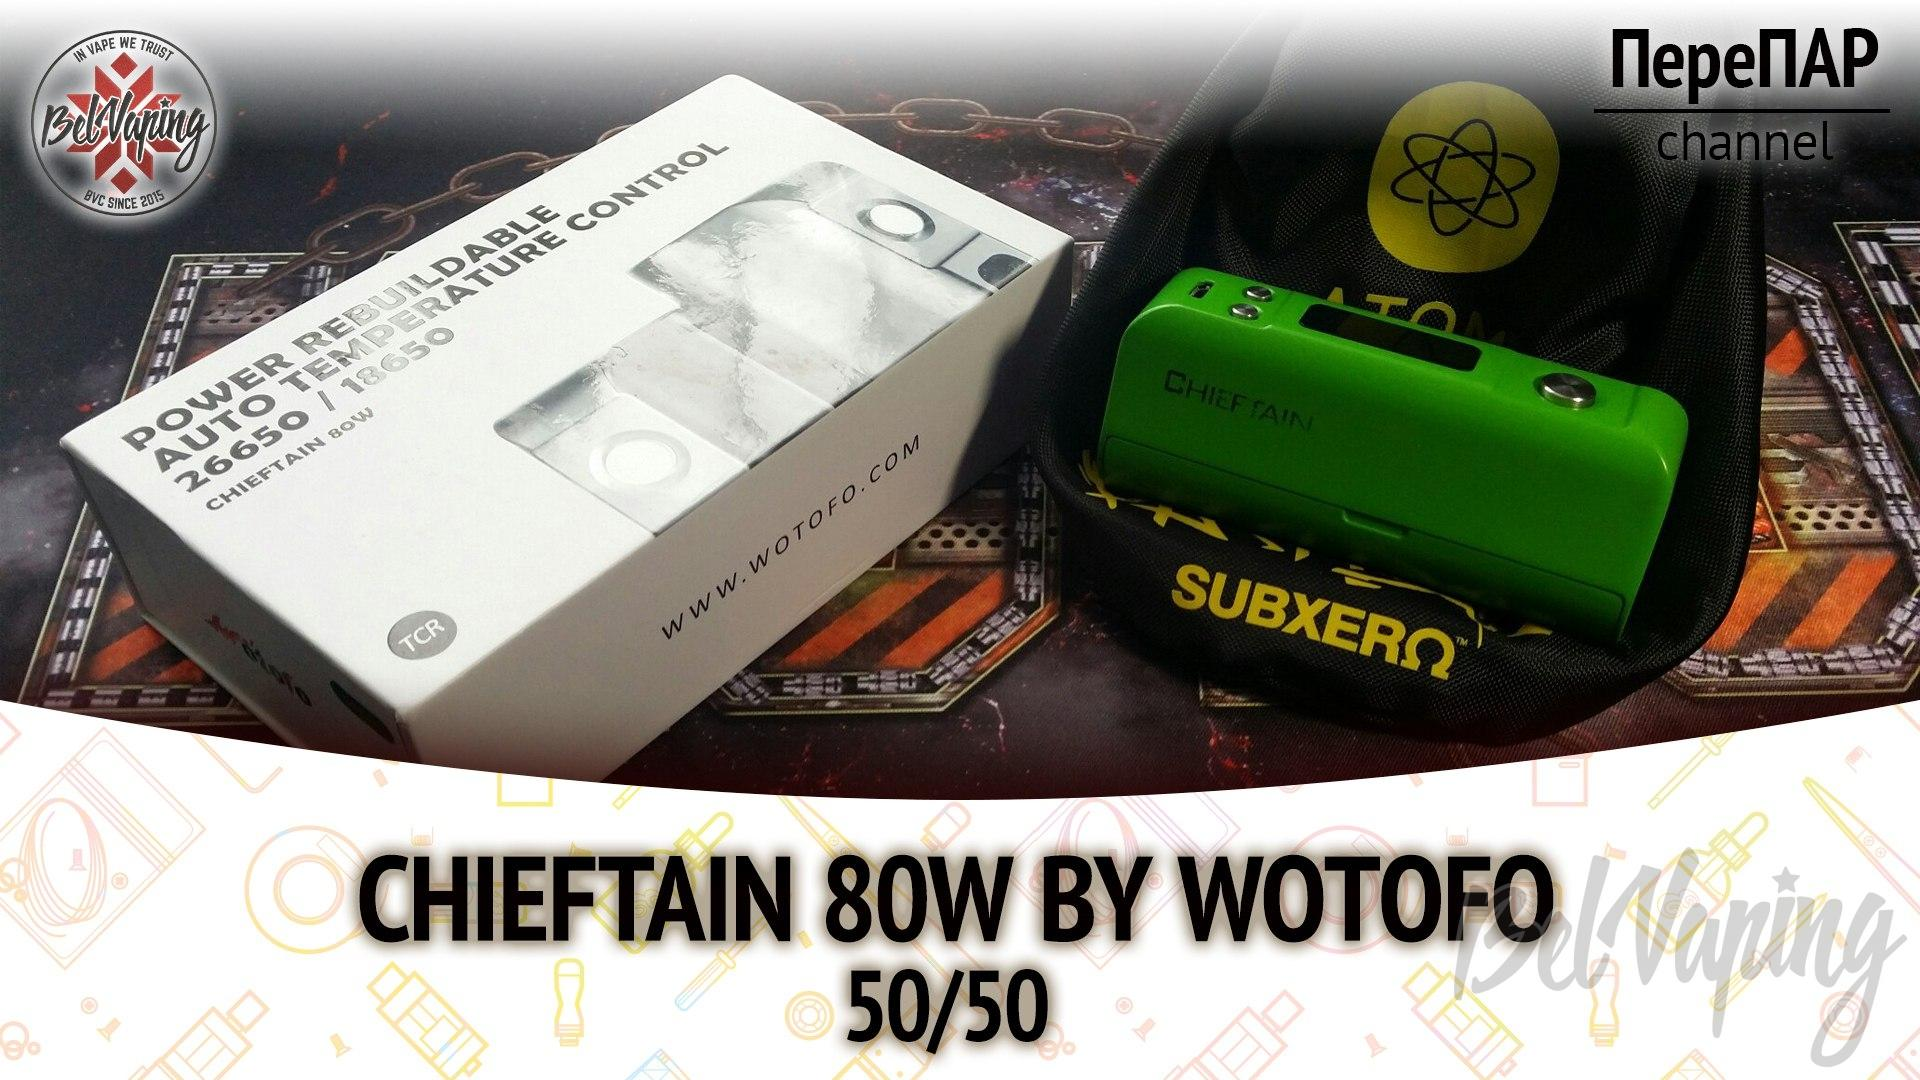 Обзор боксмода Wotofo Chieftain 80W